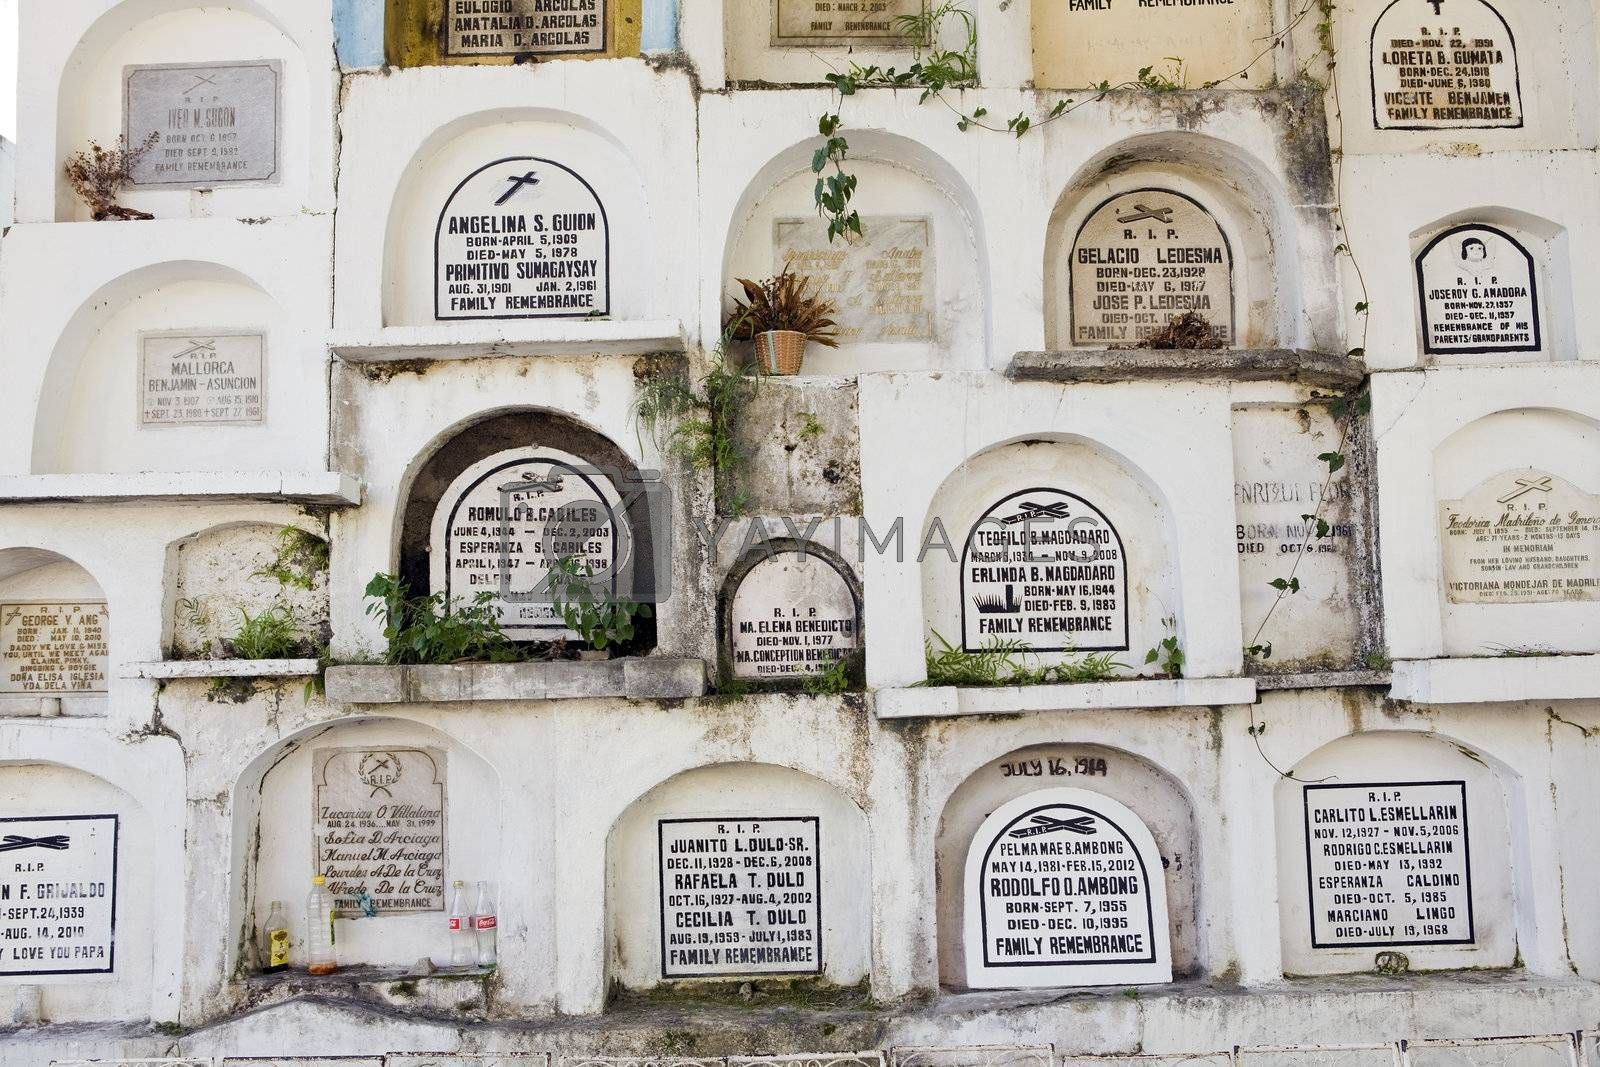 Concrete cemetary crypts stacked many levels high in a Philippine cemetery.